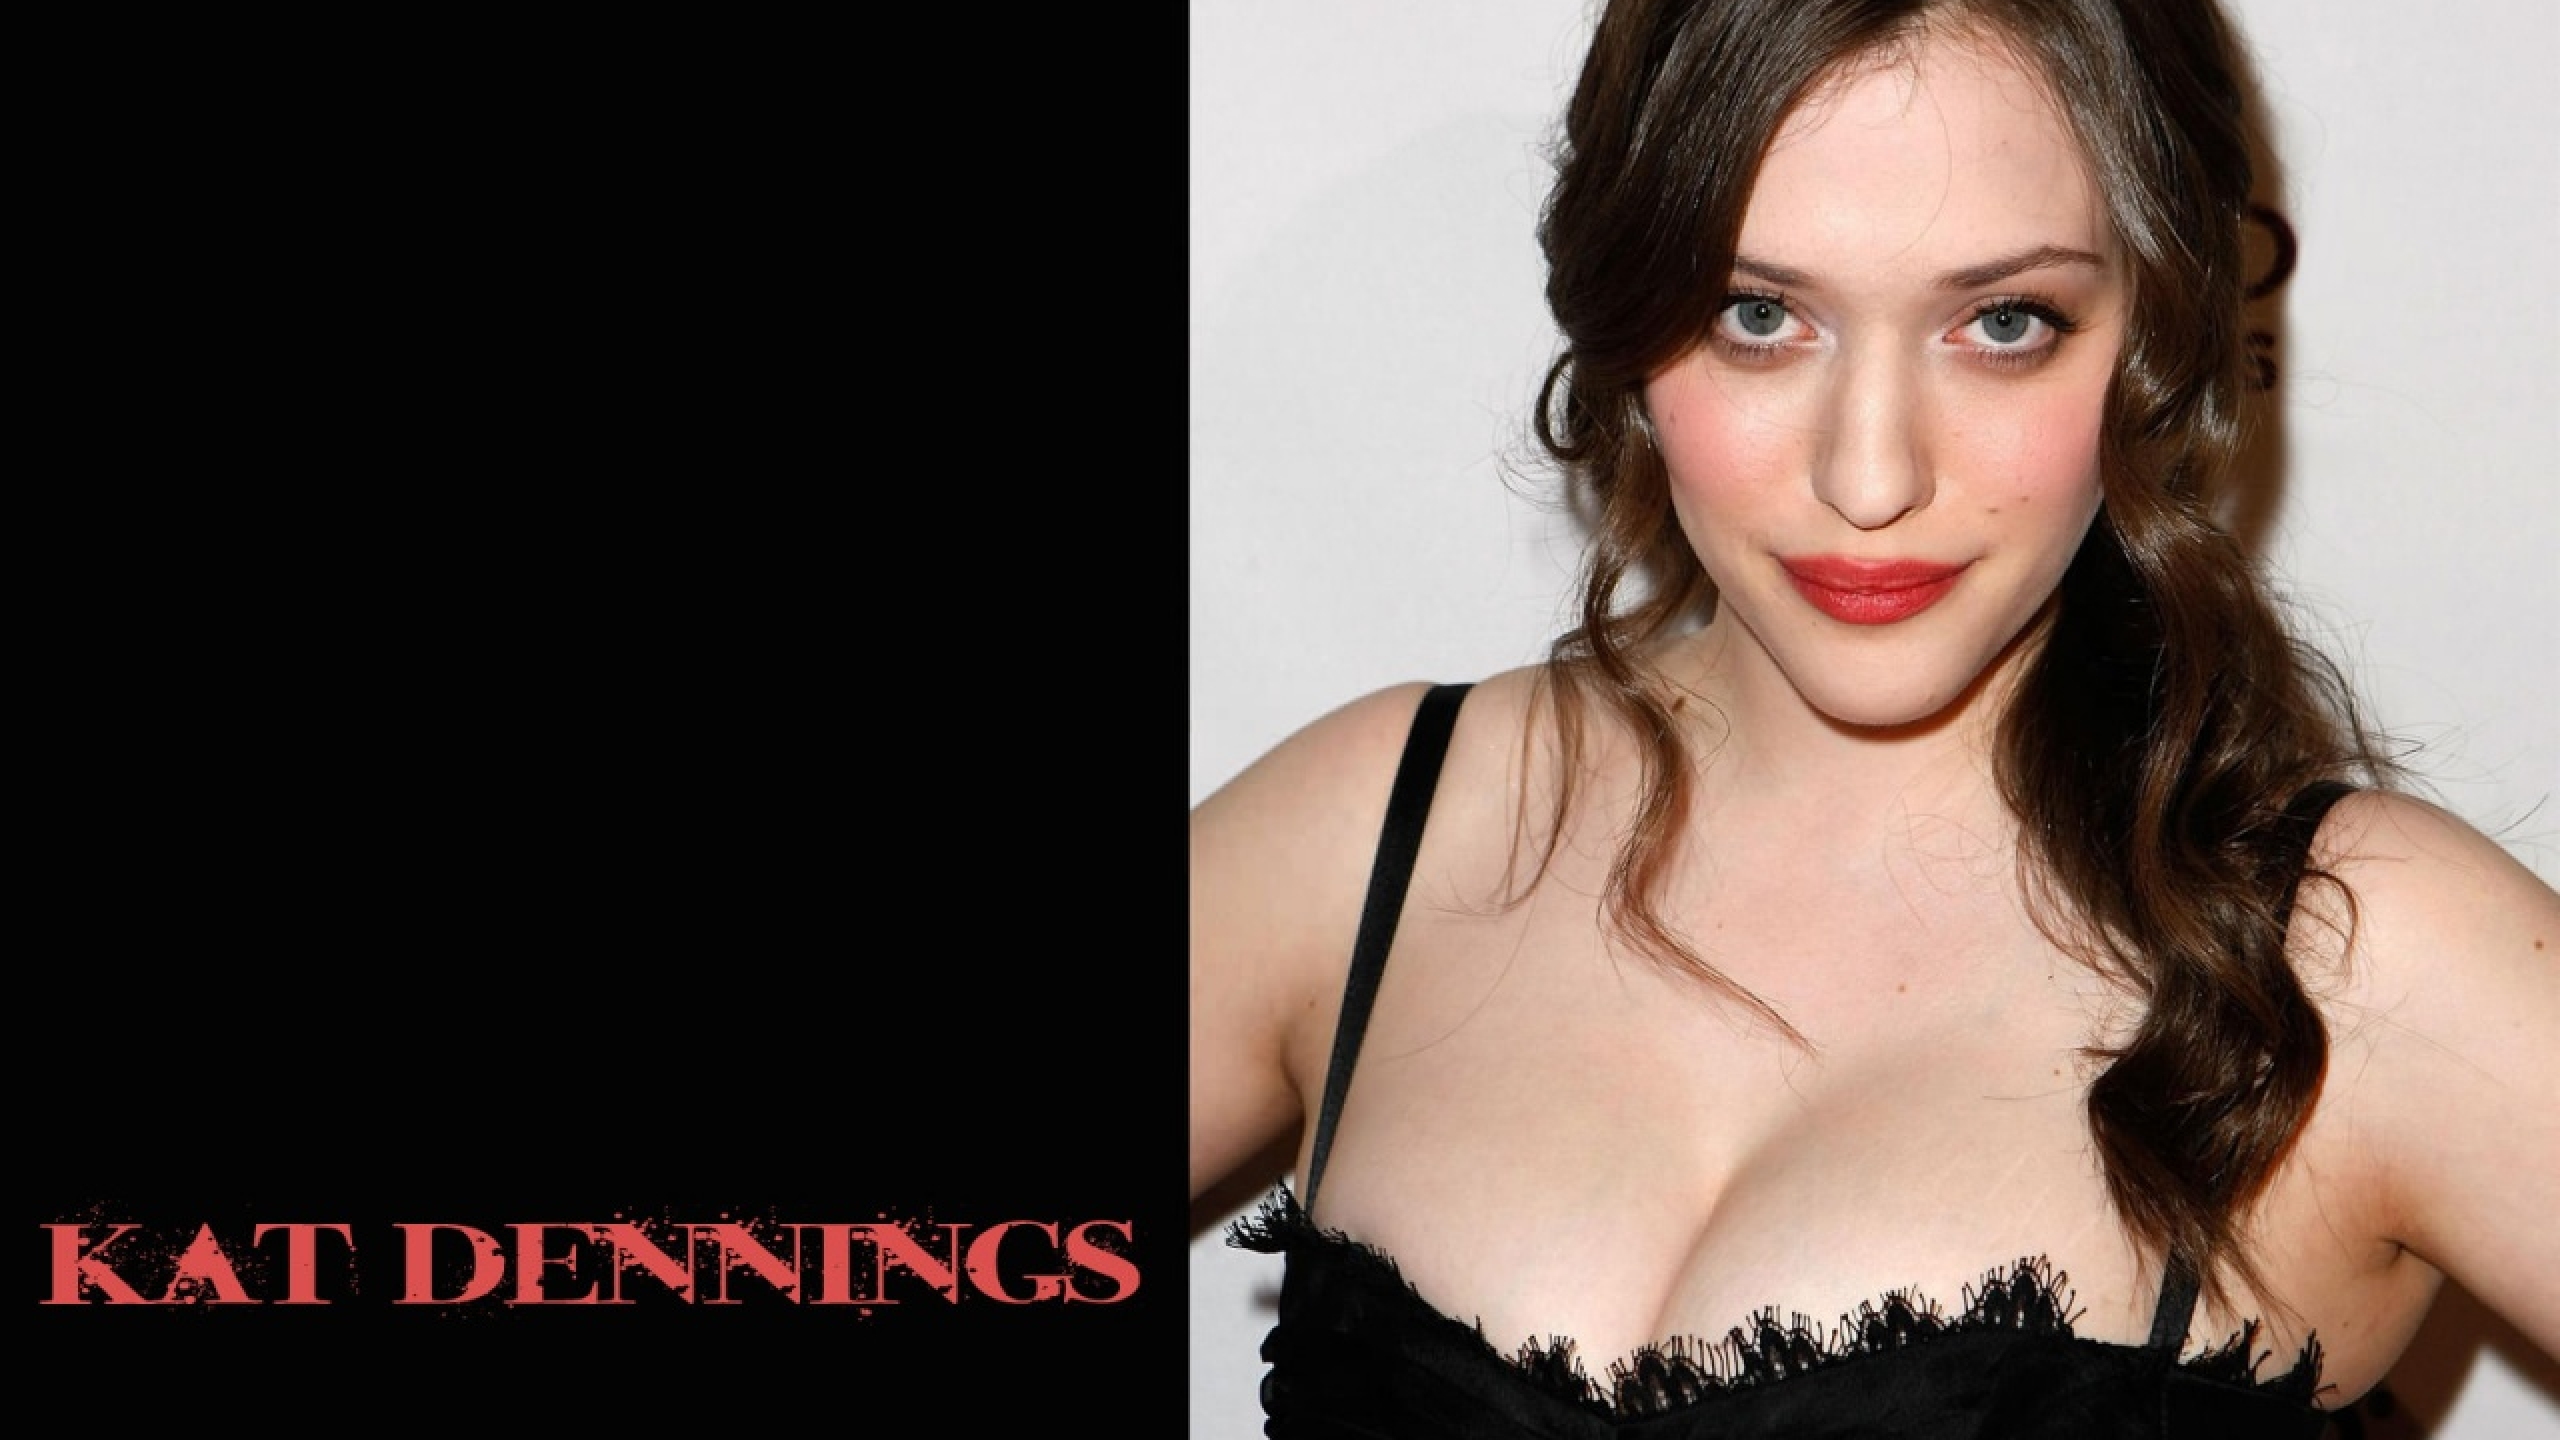 Why isn't kat dennings in more images